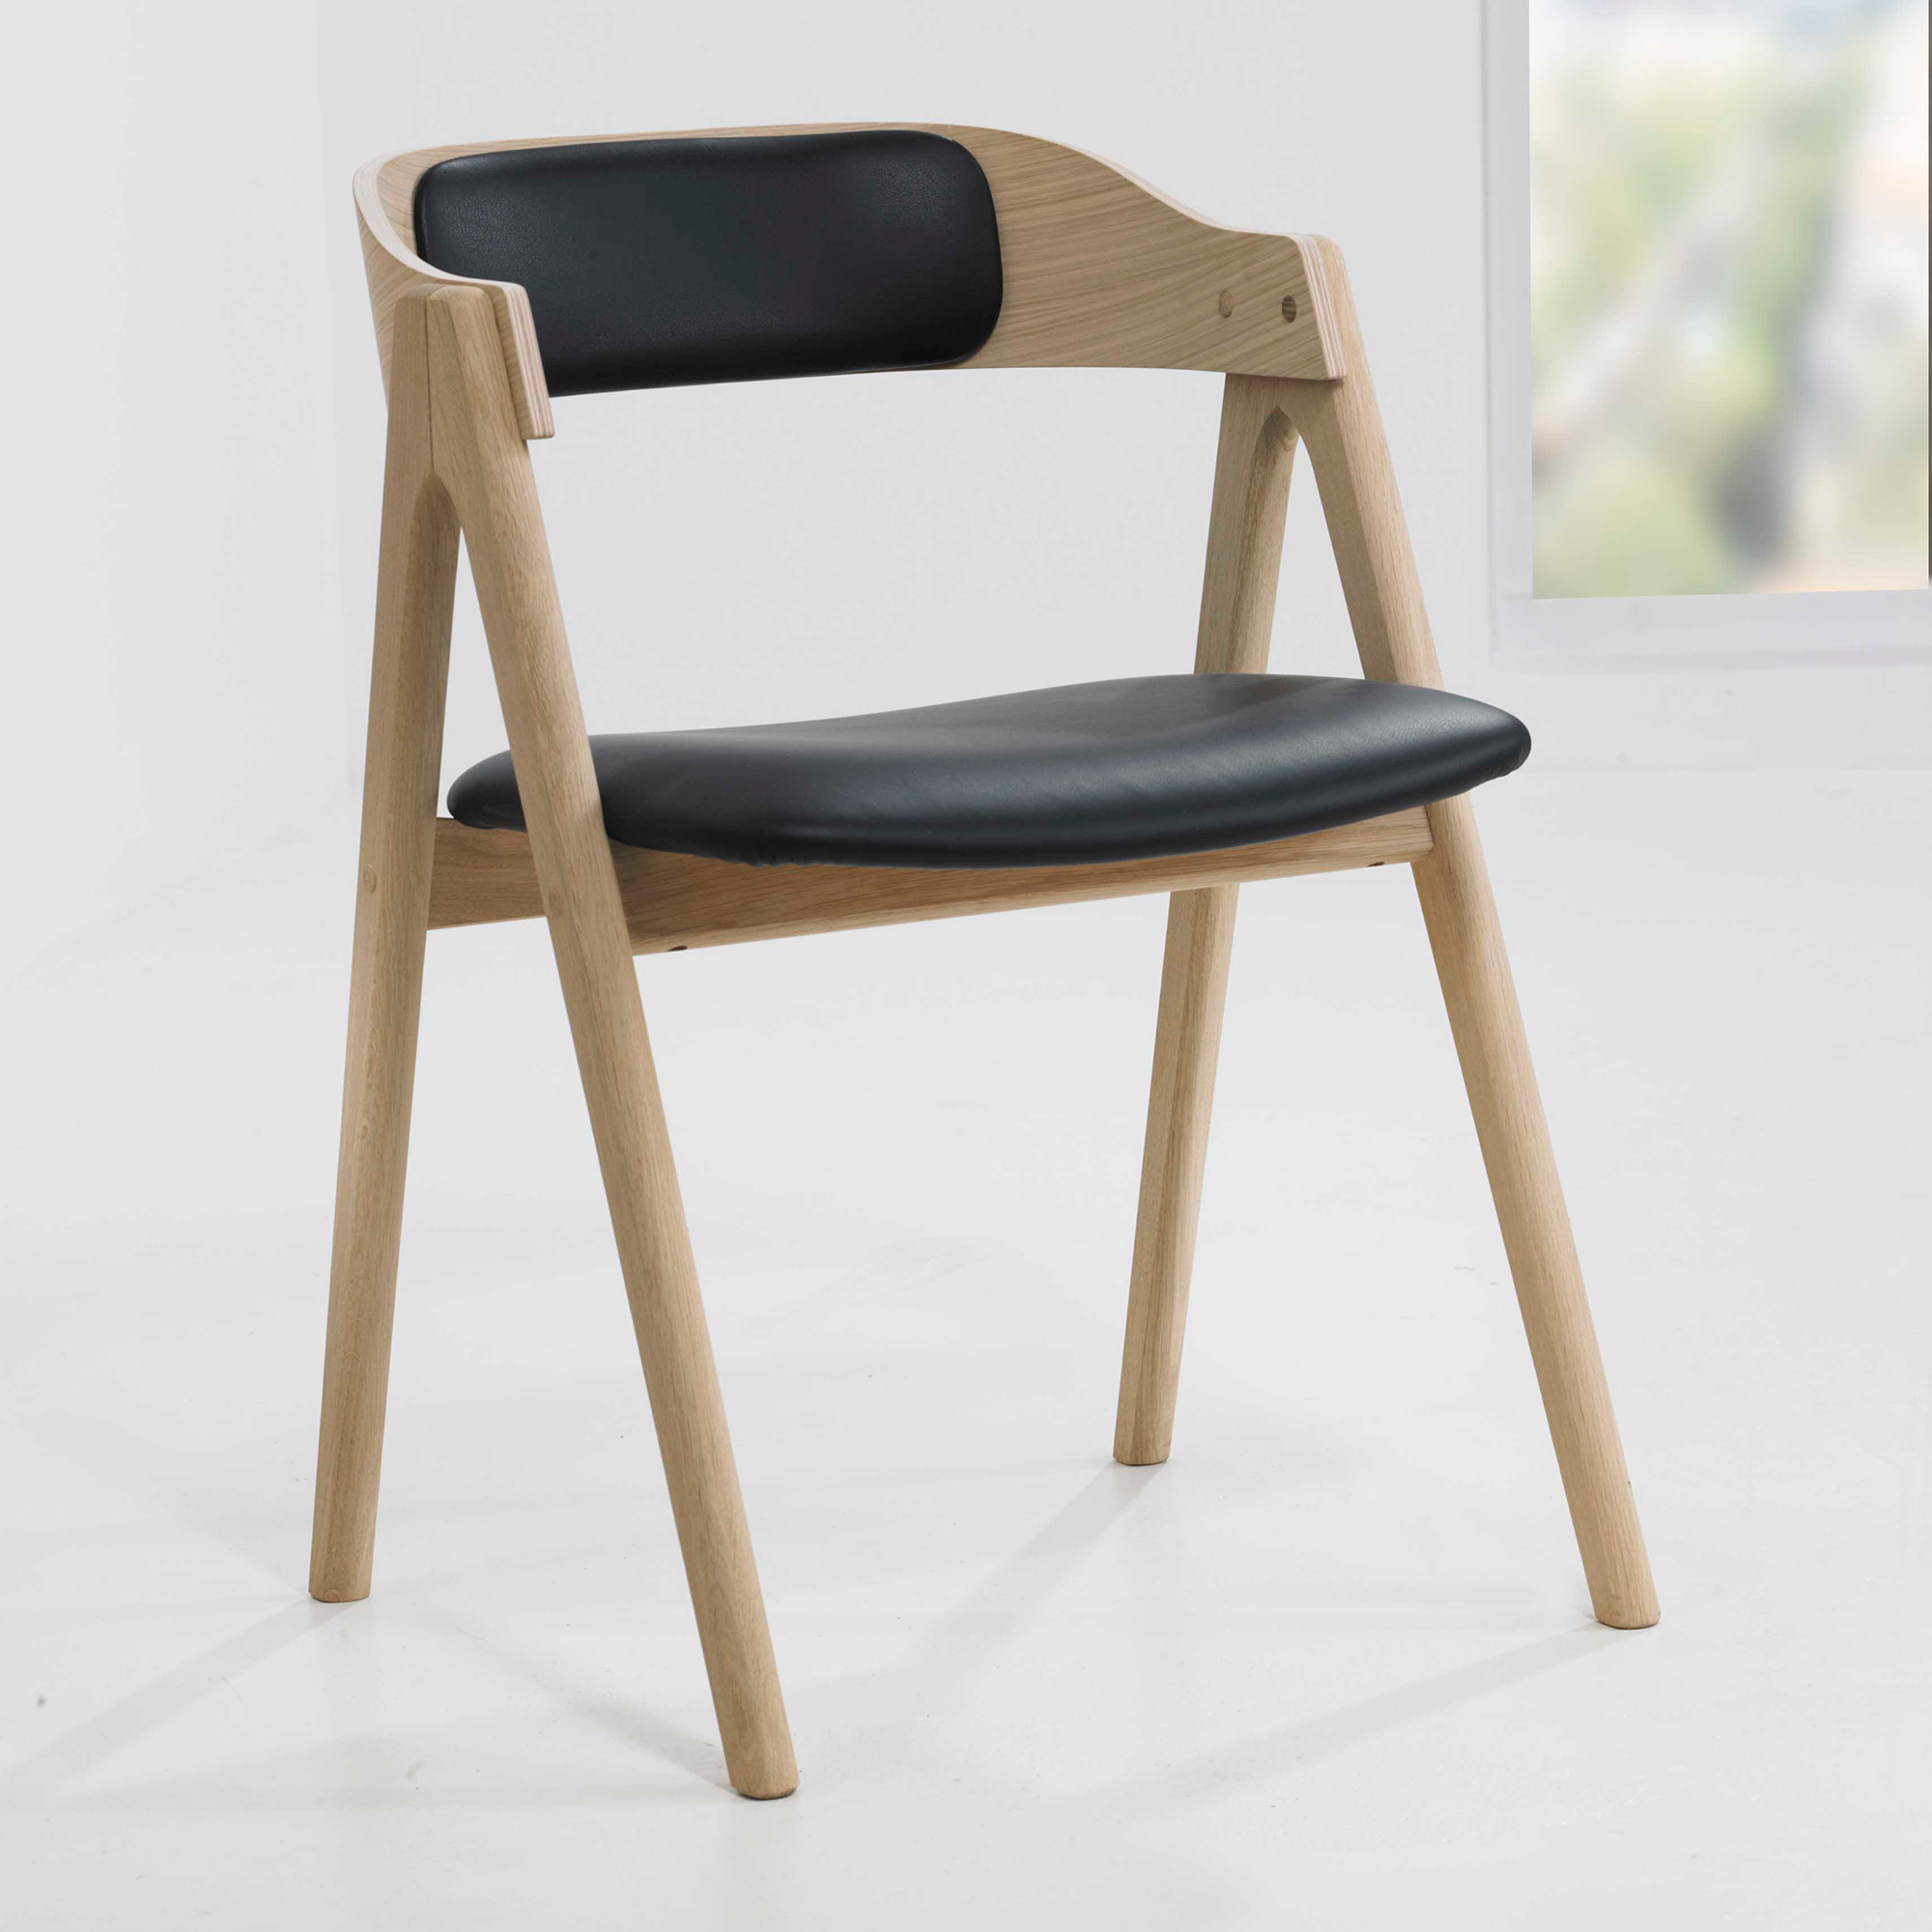 Mette Dining Chair by Carsten Buhl for Findahls Møbelfabrik